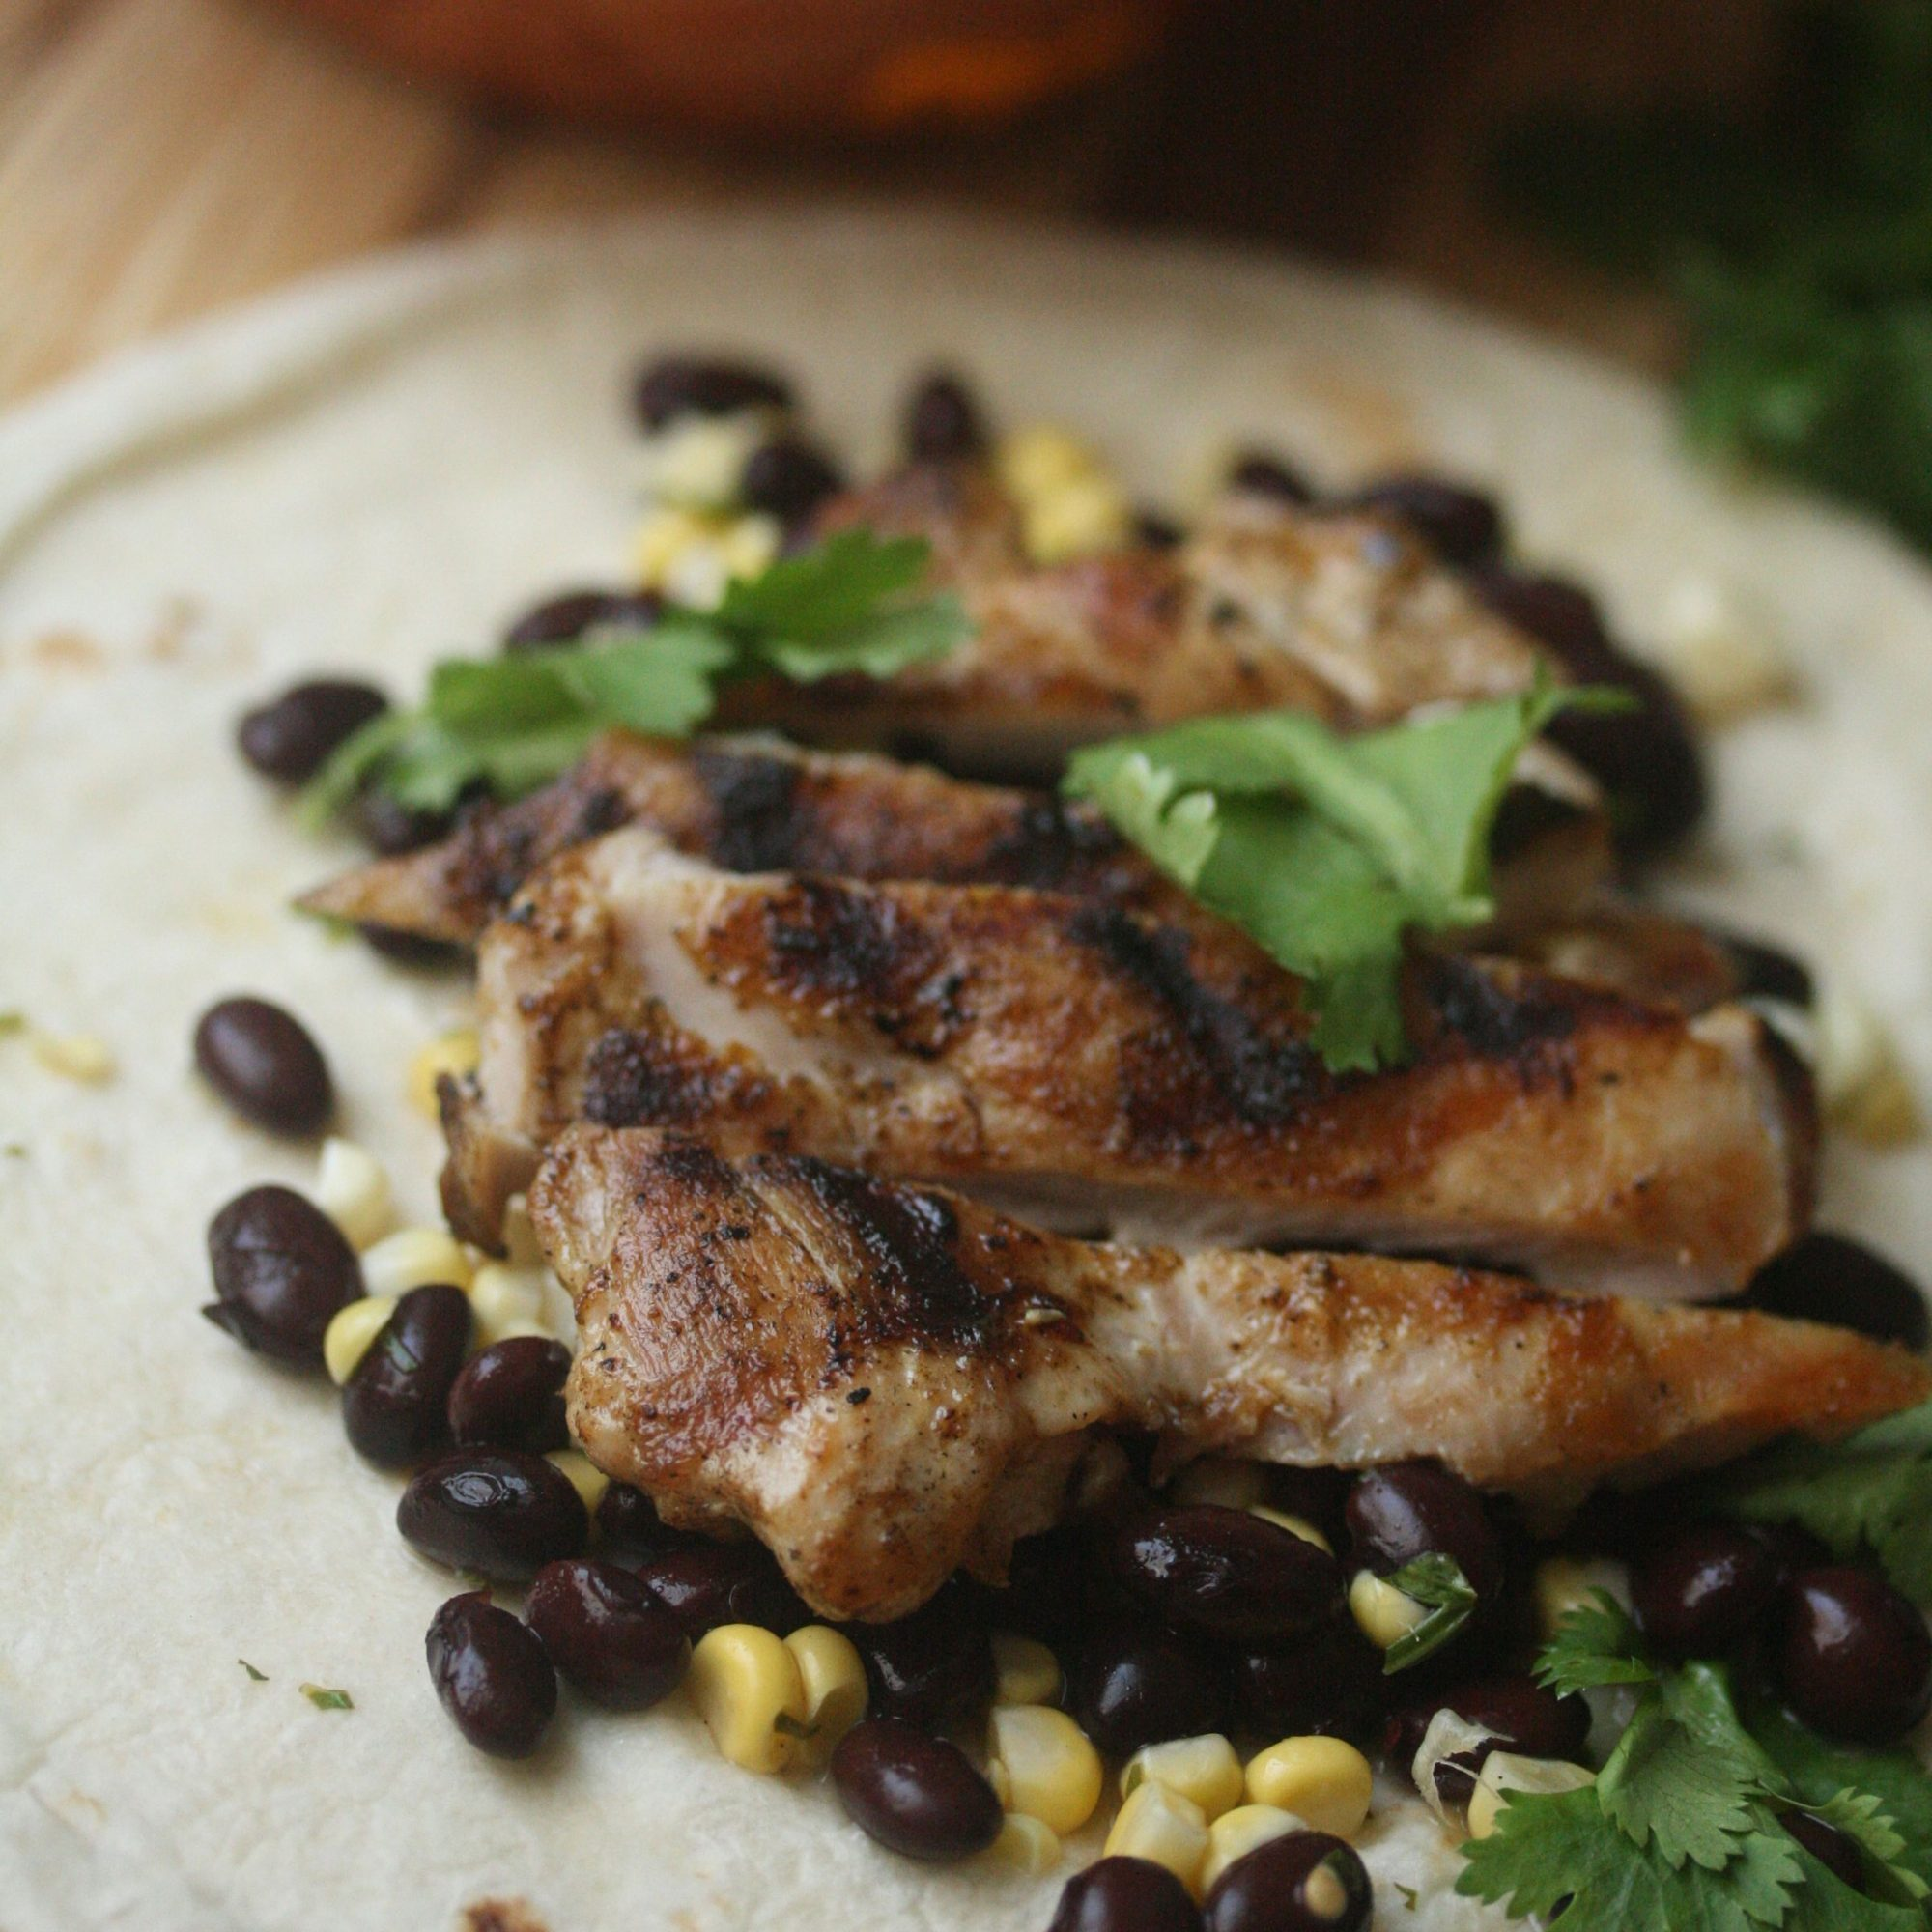 Grilled Chicken Tacos with Black Bean and Corn Salad